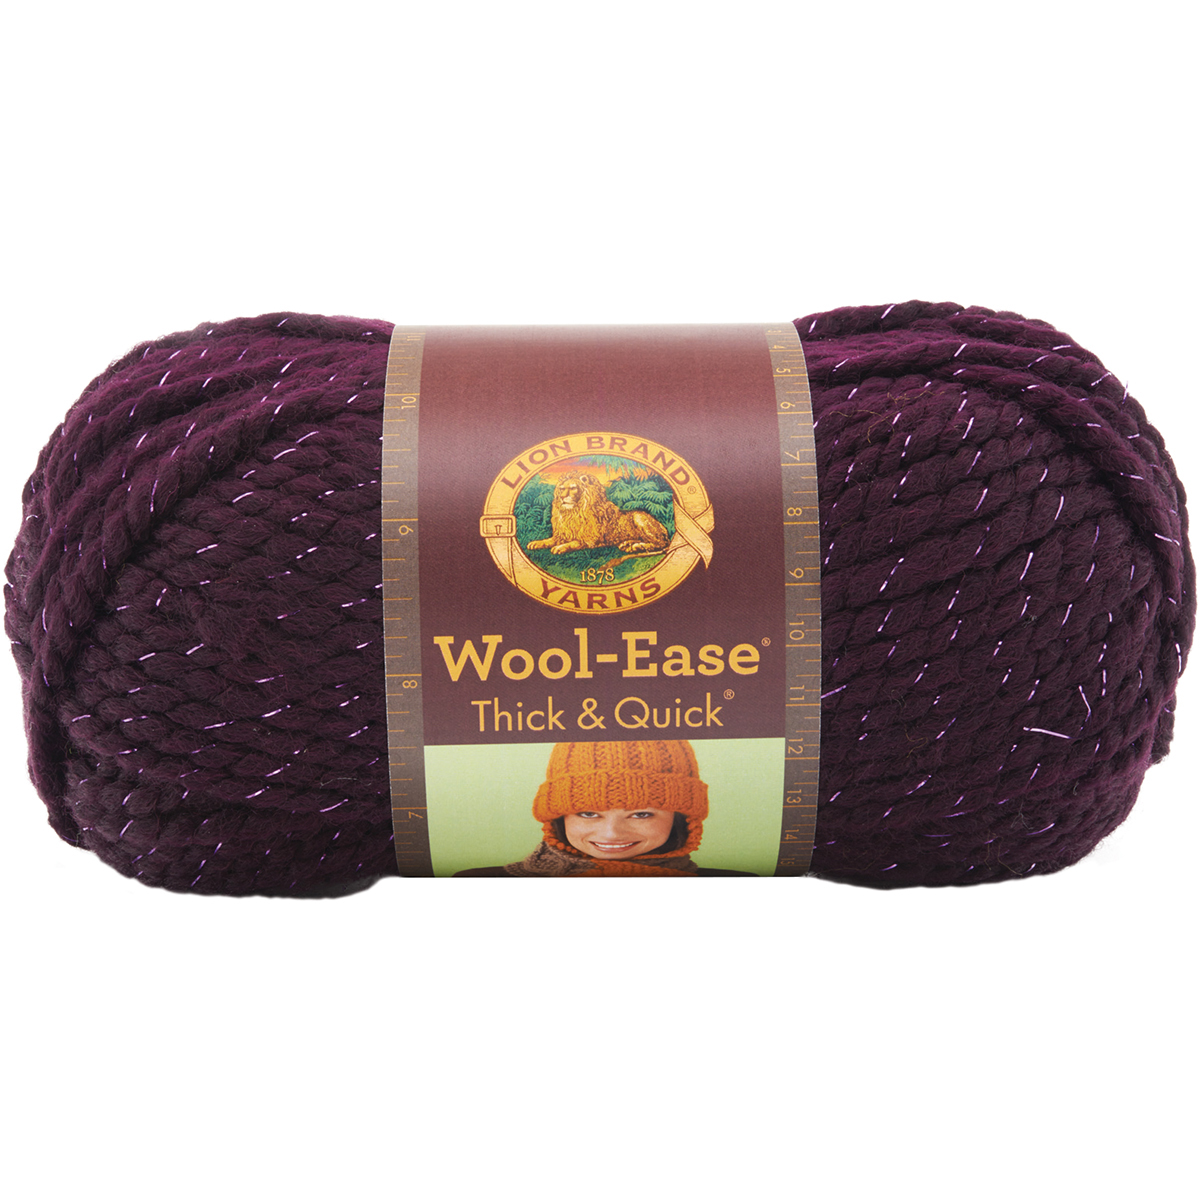 Lion Brand Wool-Ease Thick & Quick Yarn, 1 Each